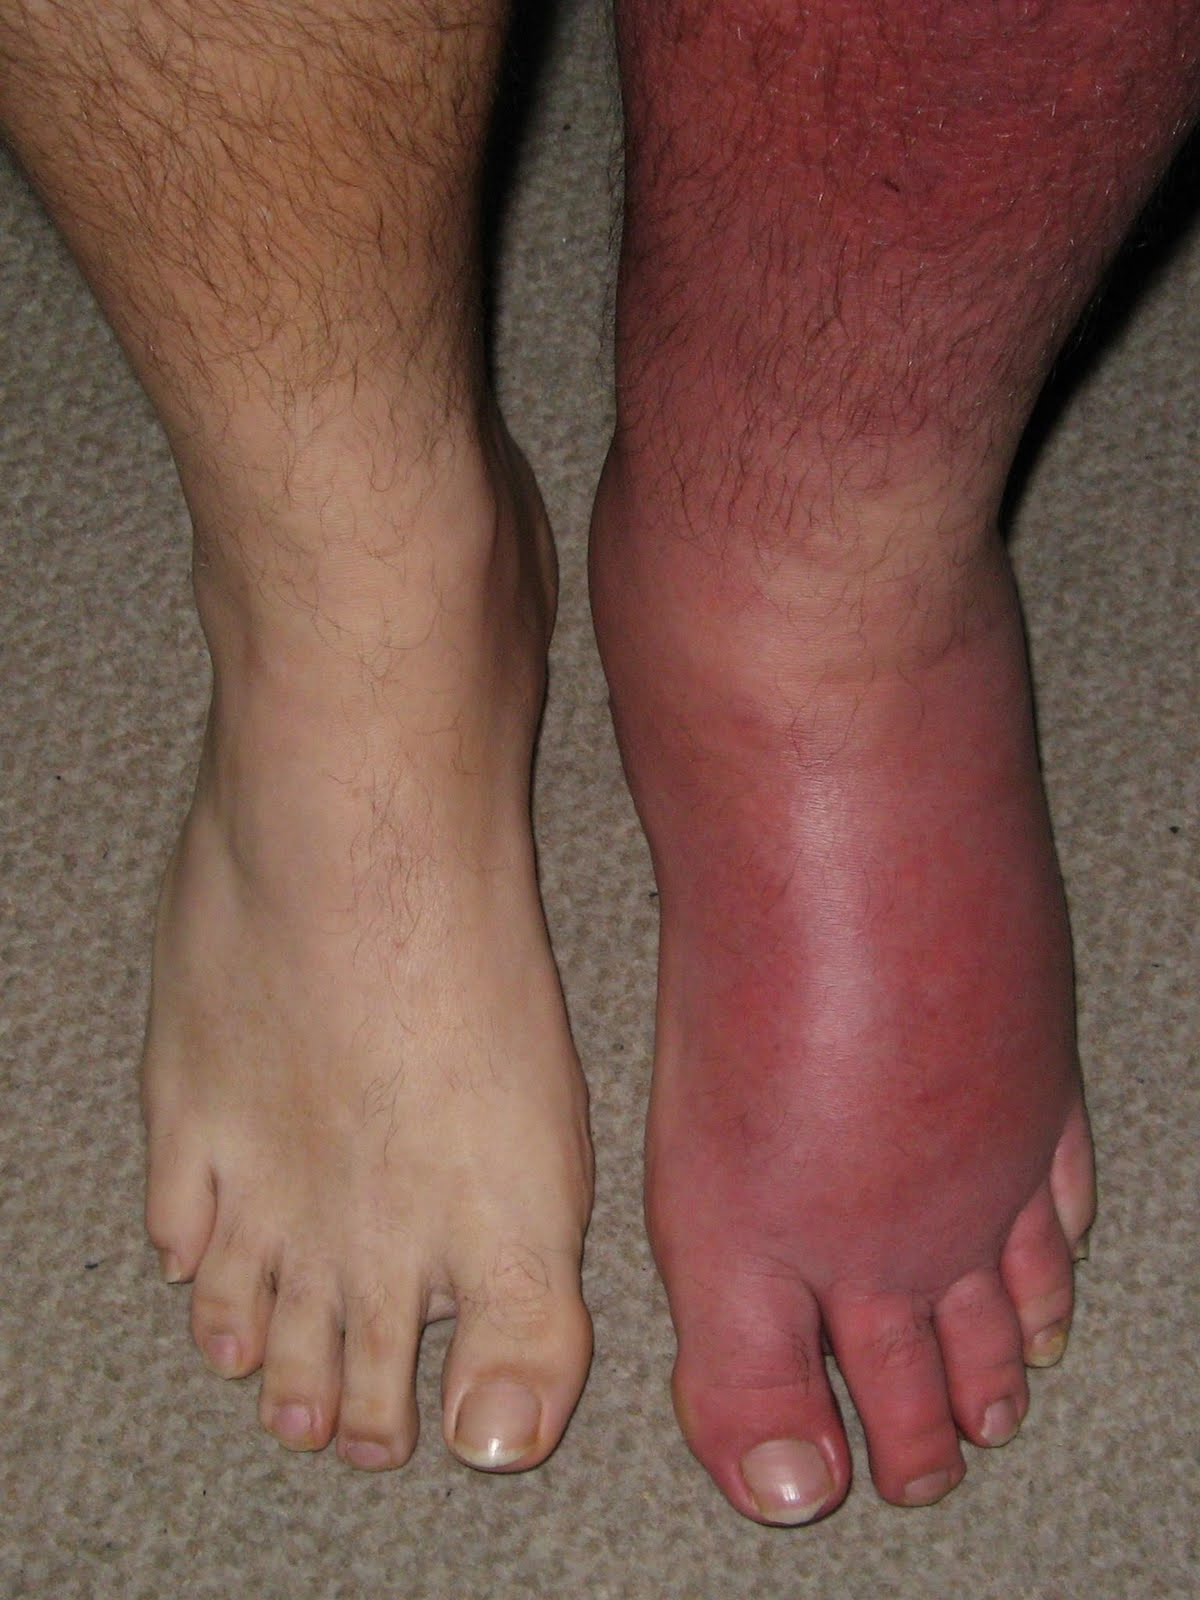 Causes of Red Swollen Feet & Ankles | LIVESTRONG.COM